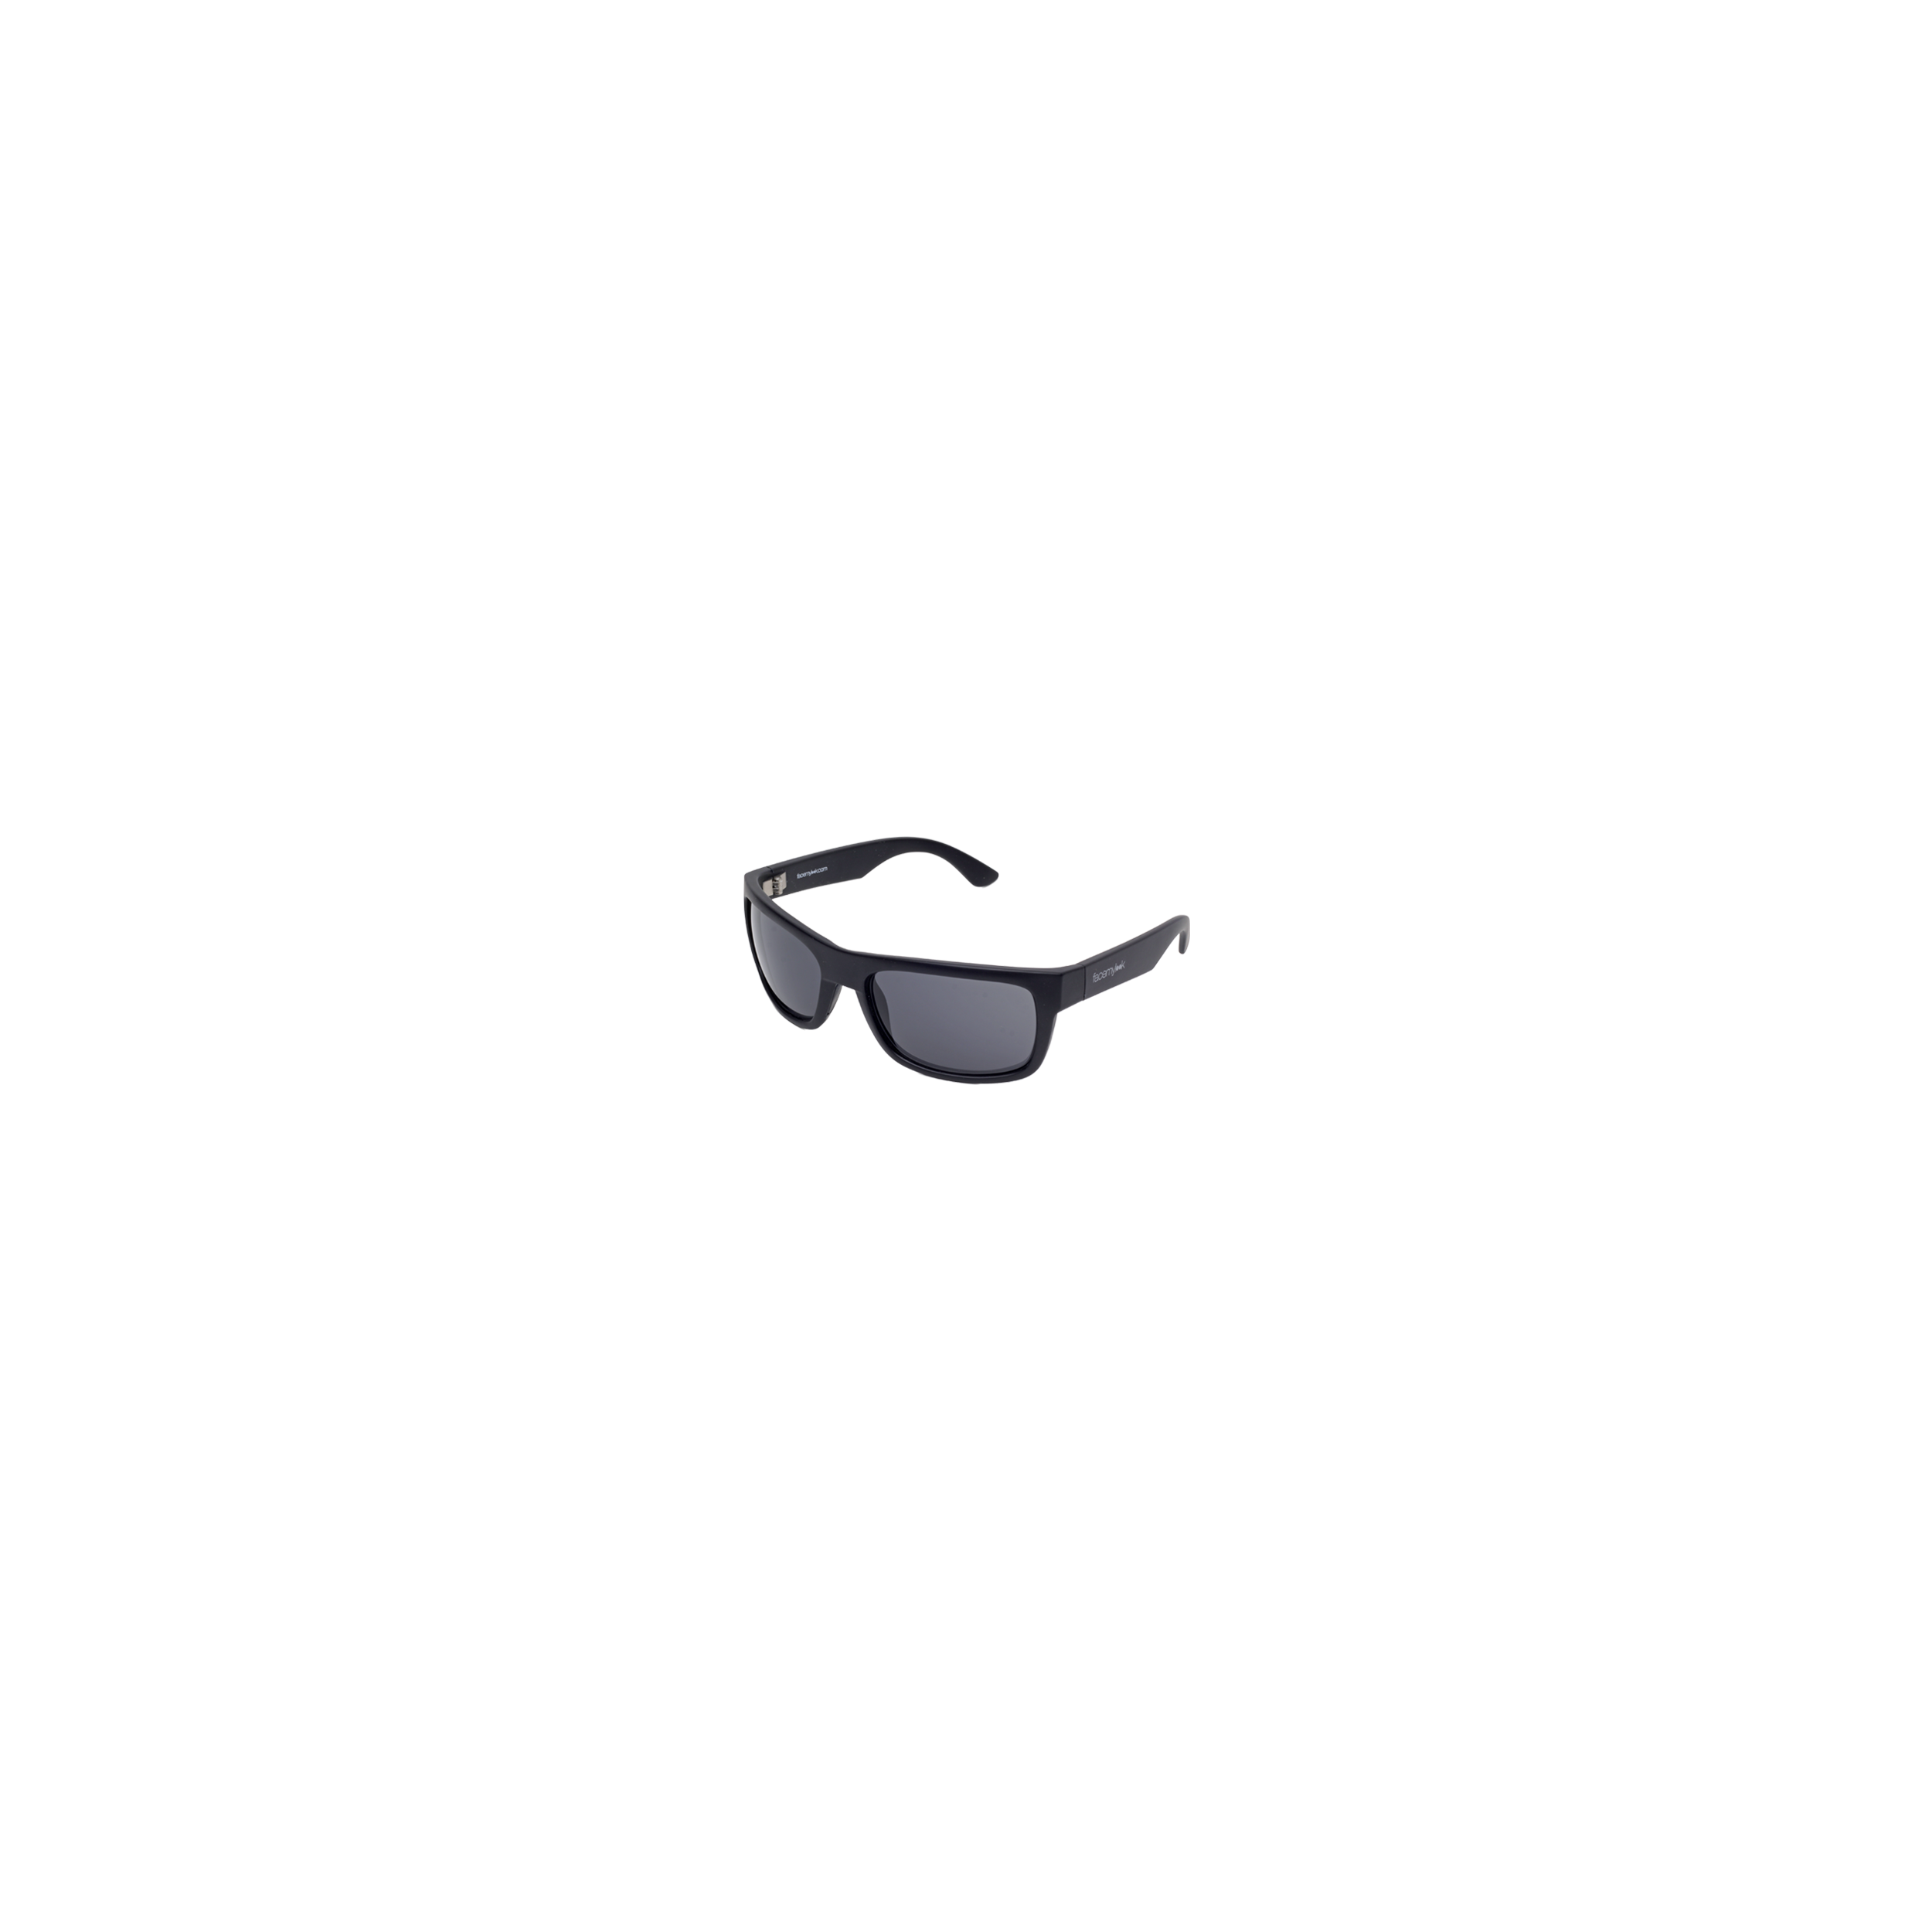 6e716a55cc1480 Facemylook   Sunglasses Theo-black - Gamme Theo